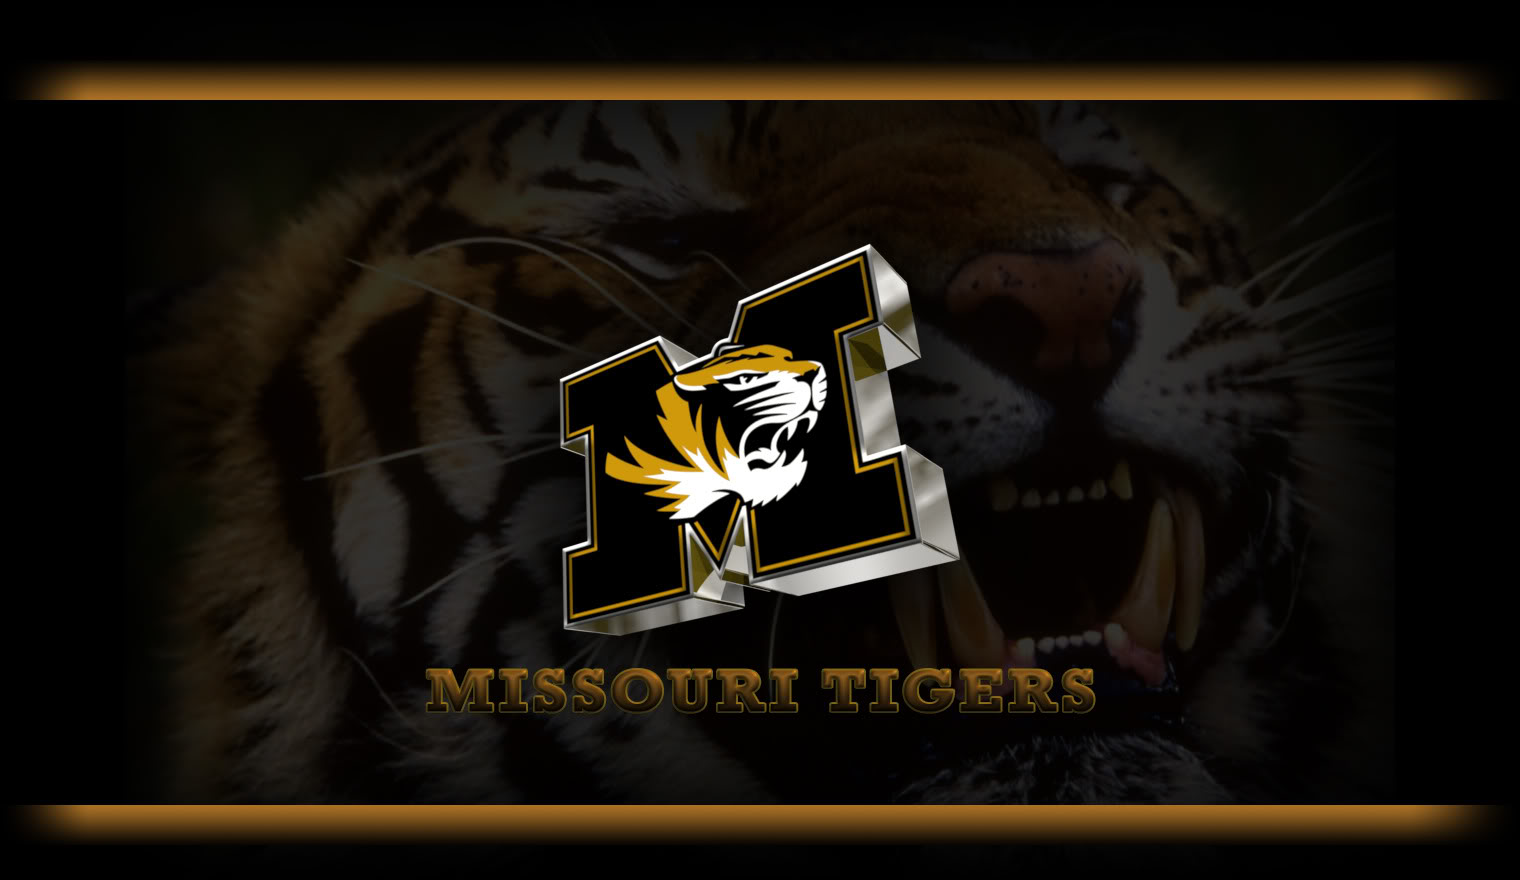 download Gallery for mizzou wallpaper backgrounds [1520x880 1520x880